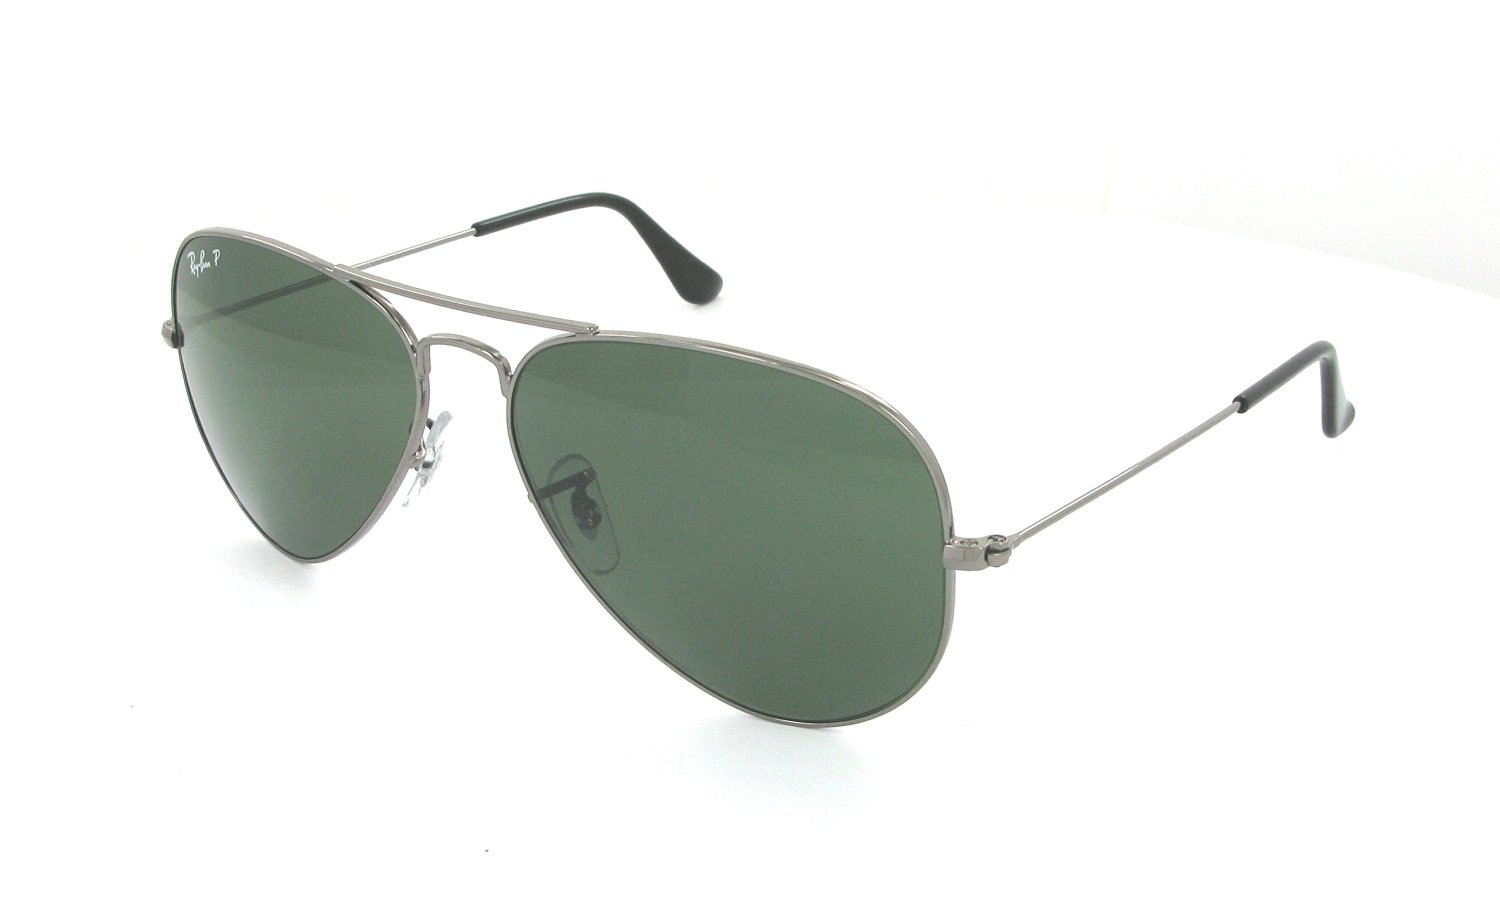 d2b784b1b8 Ray-Ban - RB3025 (Aviator Large Metal) - Gunmetal Frame-Crystal Green